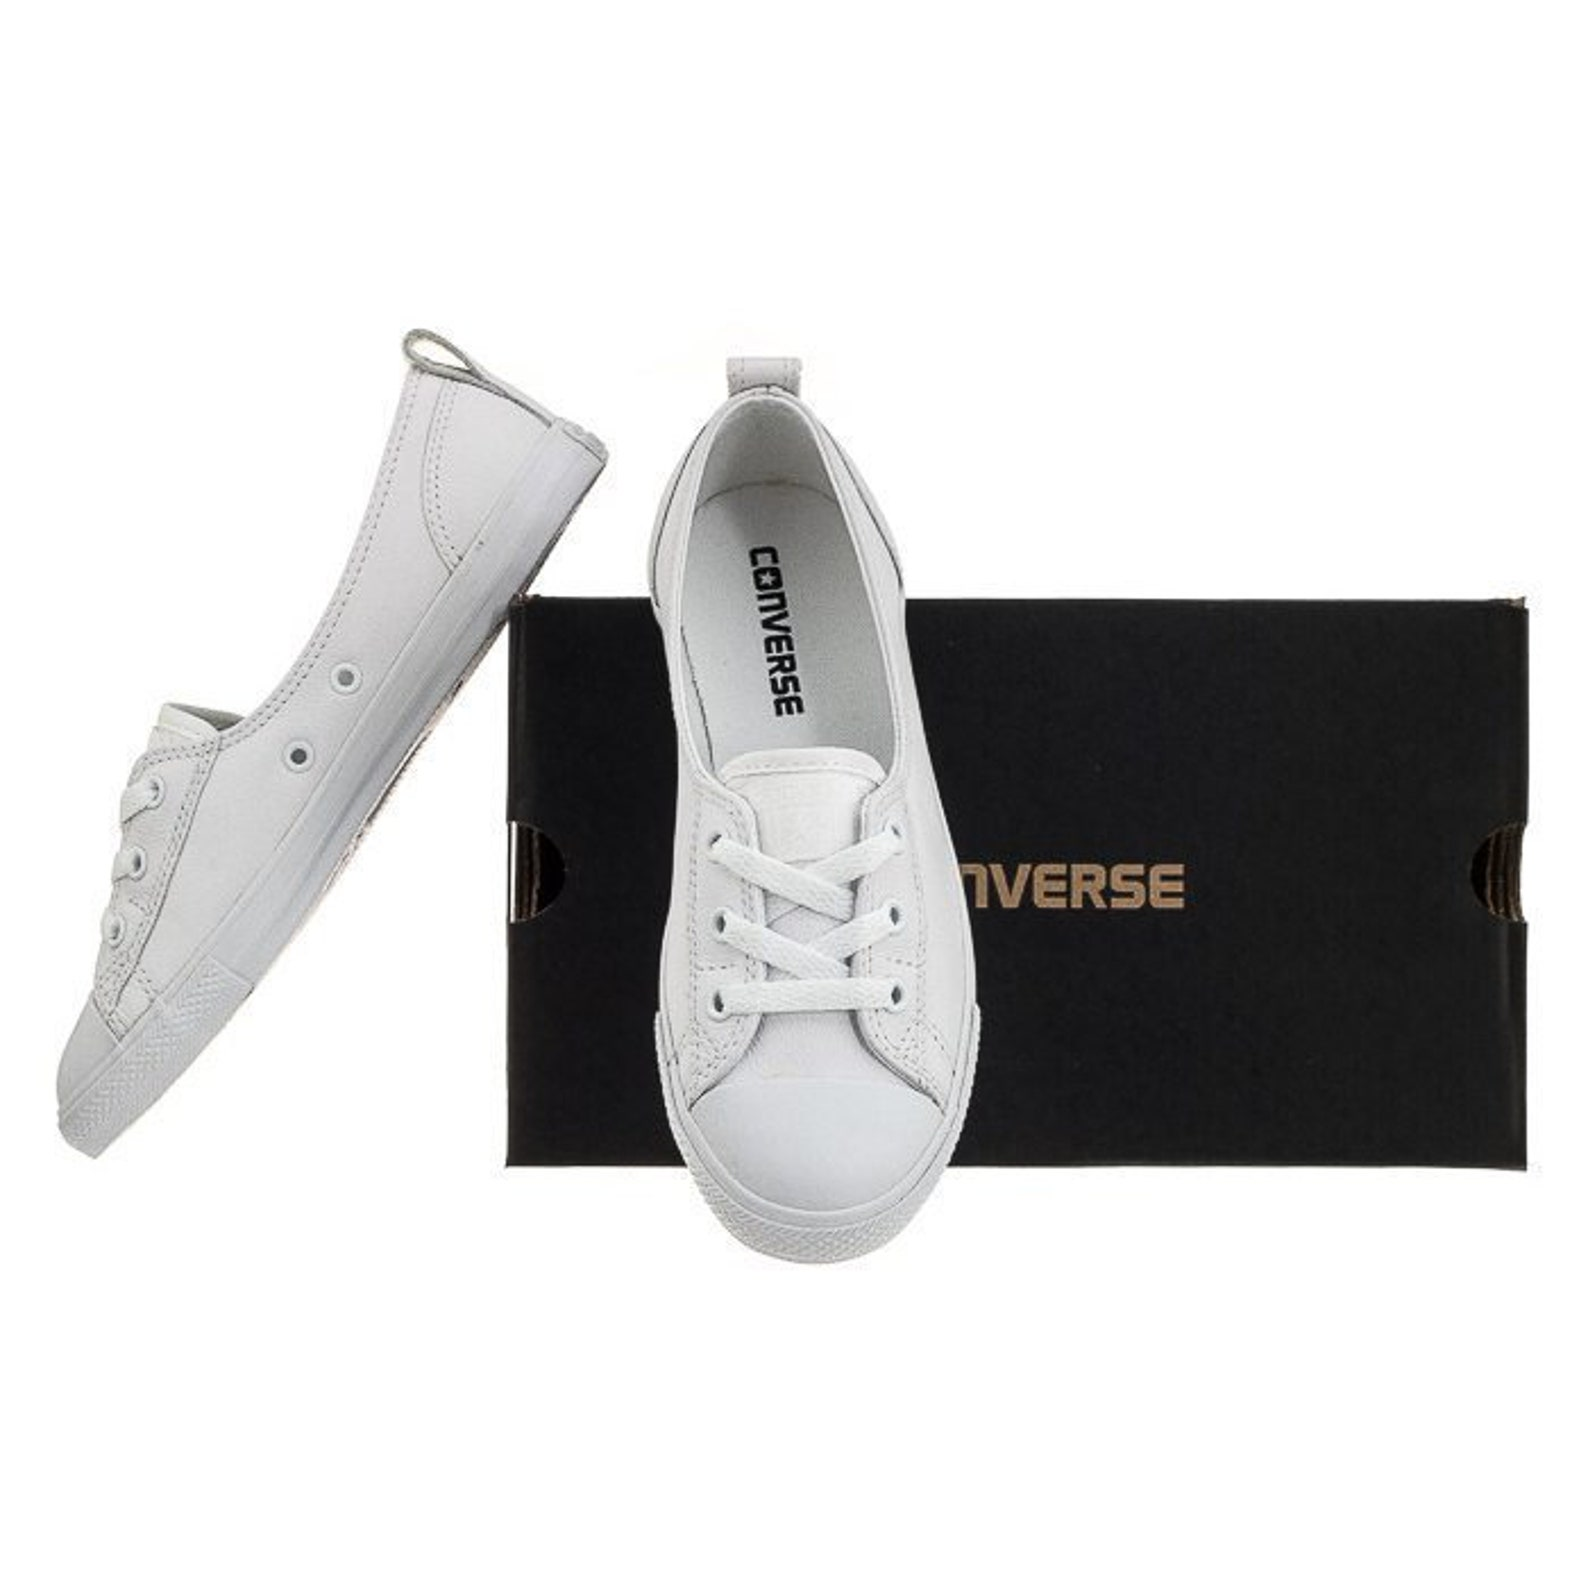 33d9e859d White Leather Converse Slip On Low Top Ballet Mono Lace Wedding Bridal  Shoes W/ Swarovski Crystal ...